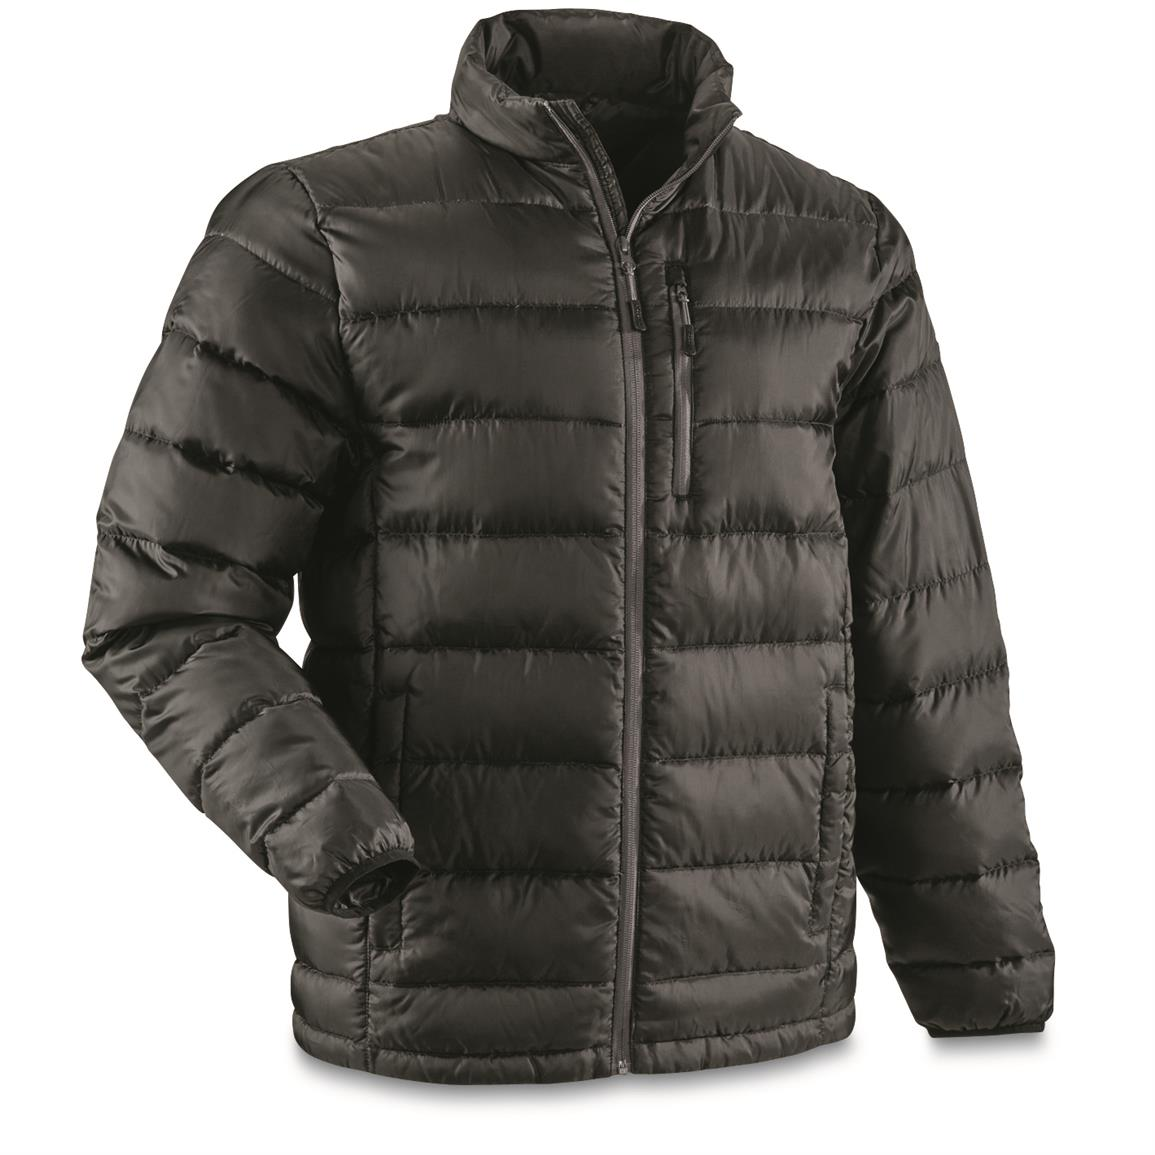 85fed59099 Guide Gear Men's Down Jacket - 673942, Insulated Jackets & Coats at ...